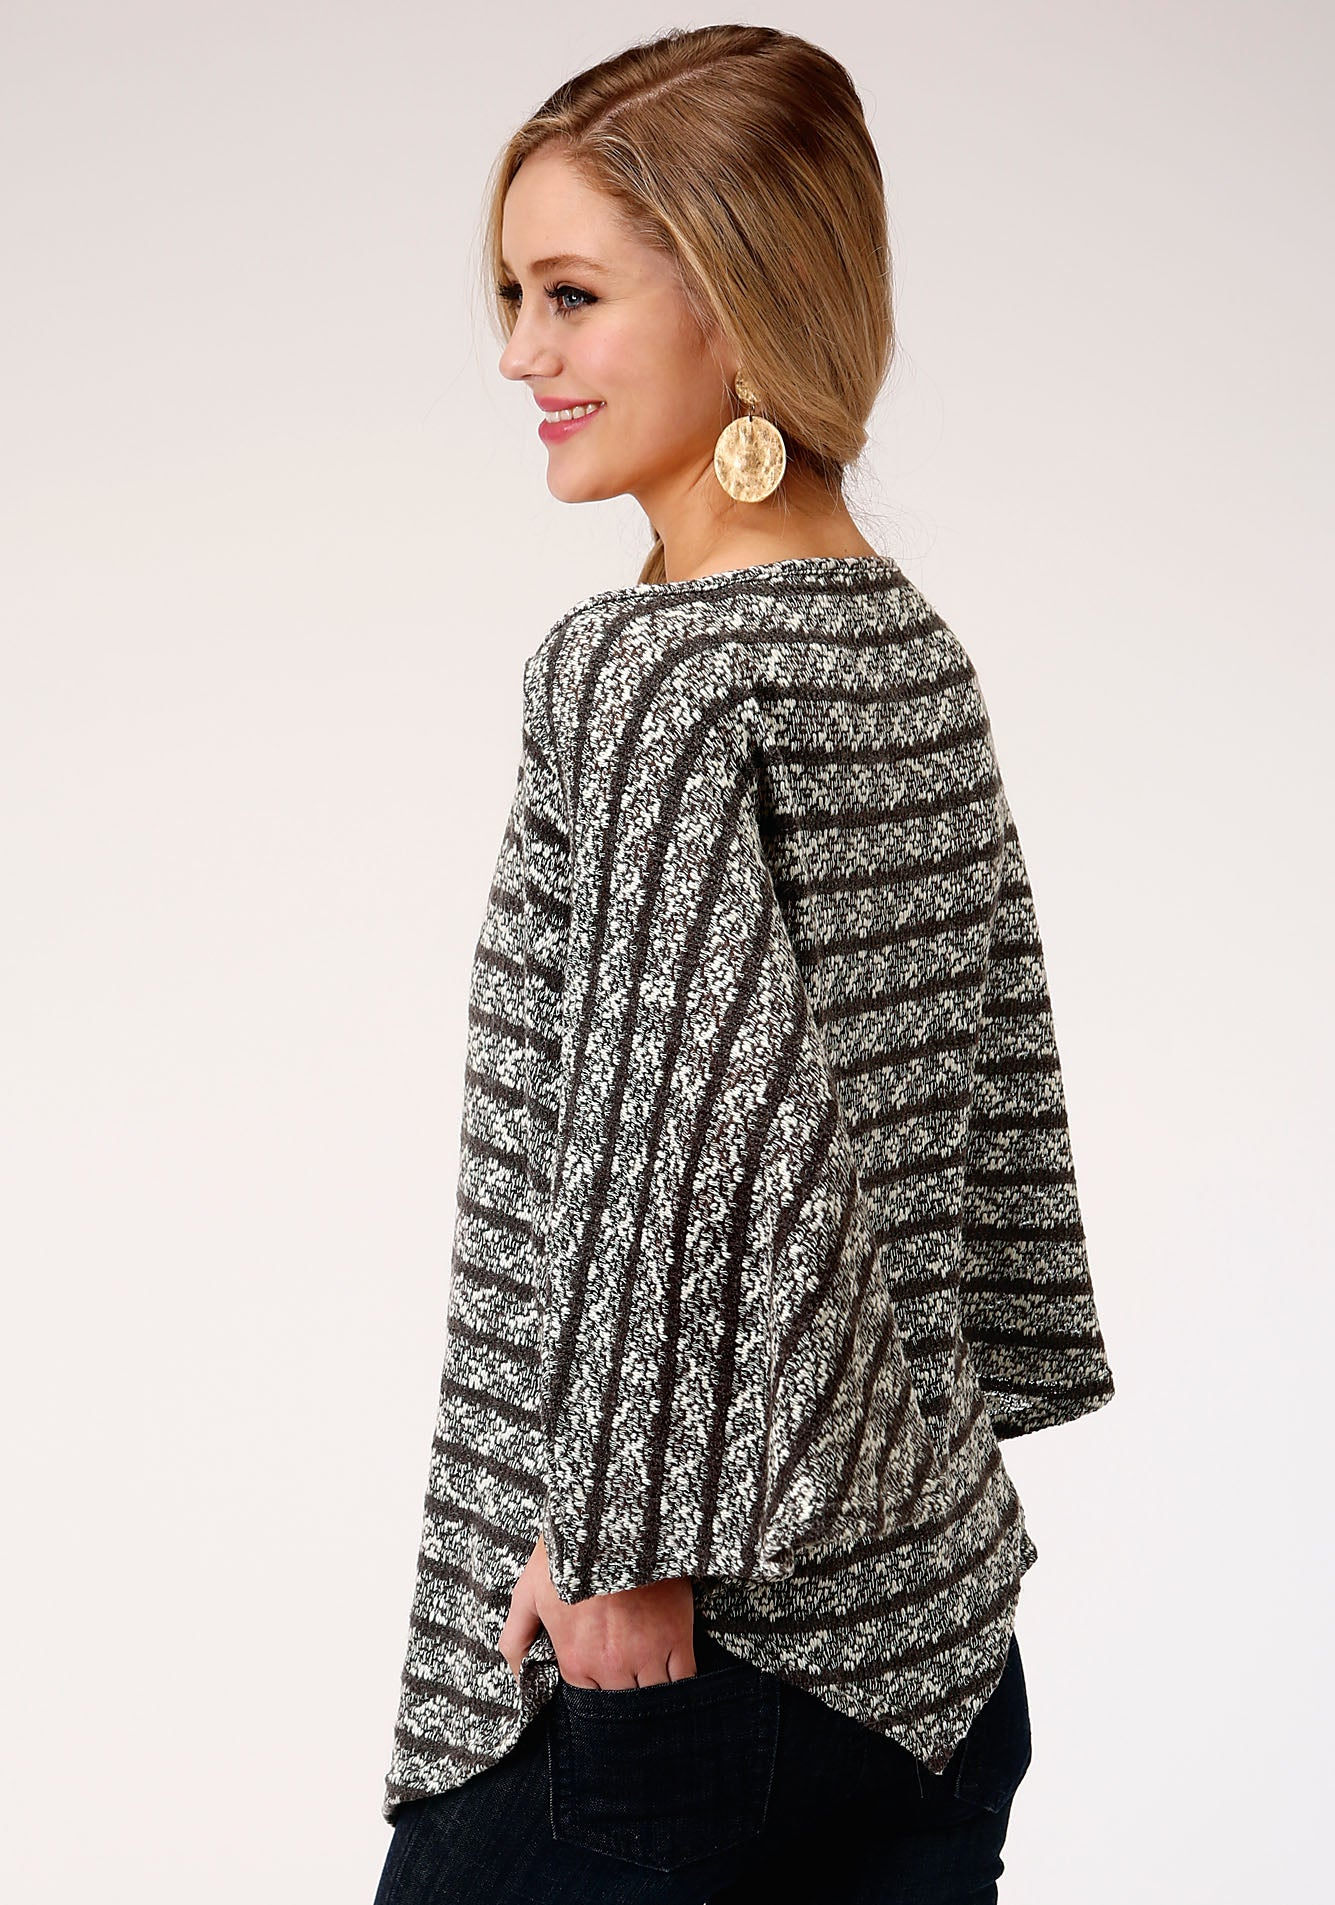 ROPER WOMENS GREY 00121 SWEATER KNIT ONE SHOULDER PONCHO FIVE STAR COLLECTION- SPRING I SWEATER